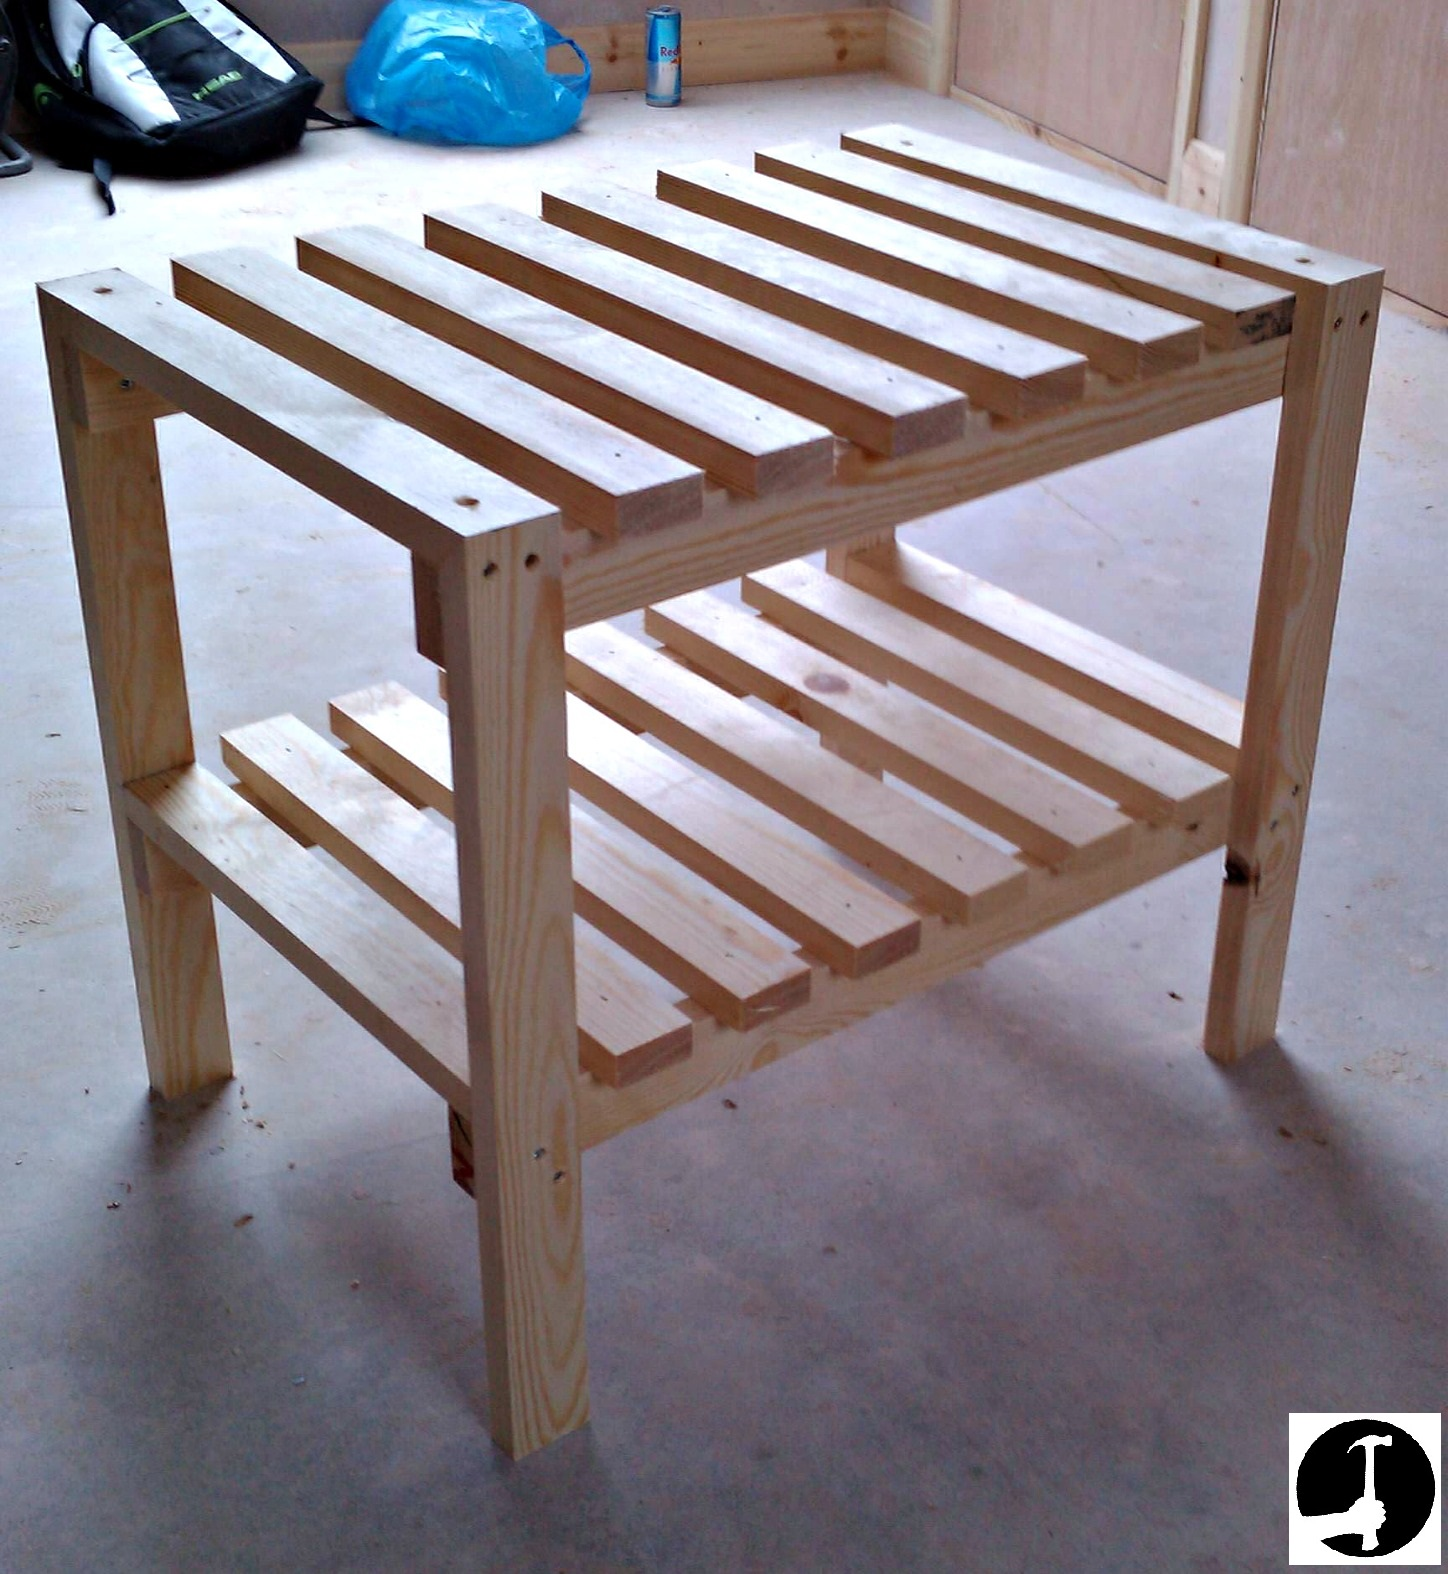 Slatted shelf rack for a cupboard